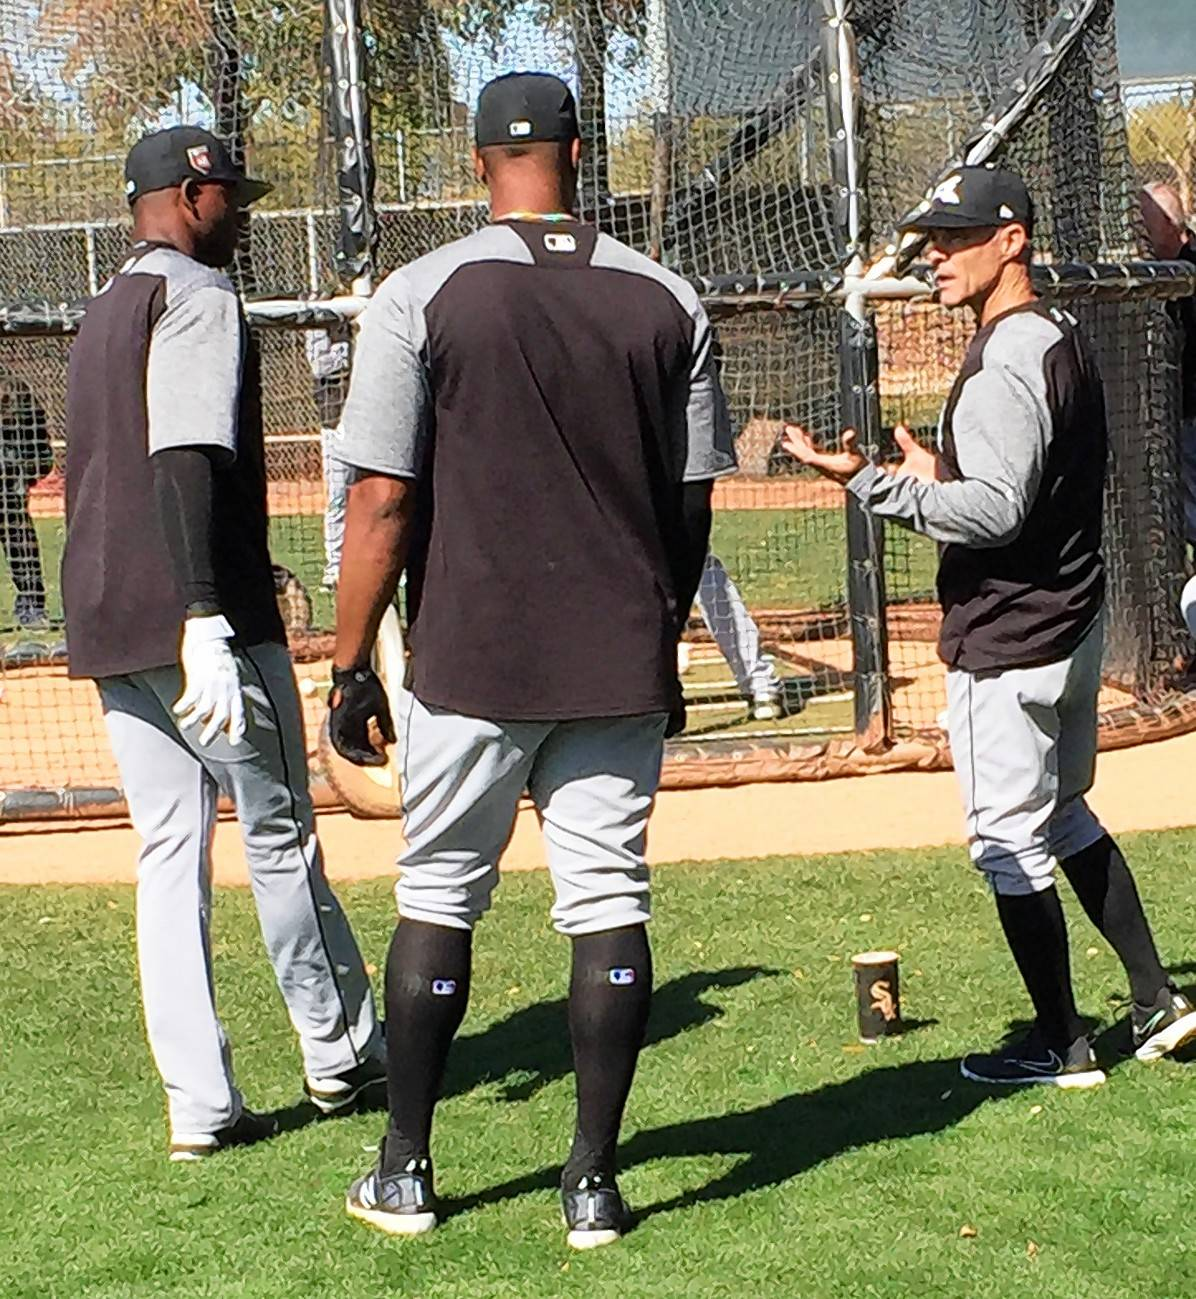 Mike Gellinger, right, with Eloy Jimenez, center, and Luis Robert, two of the top prospects in the White Sox farm system.